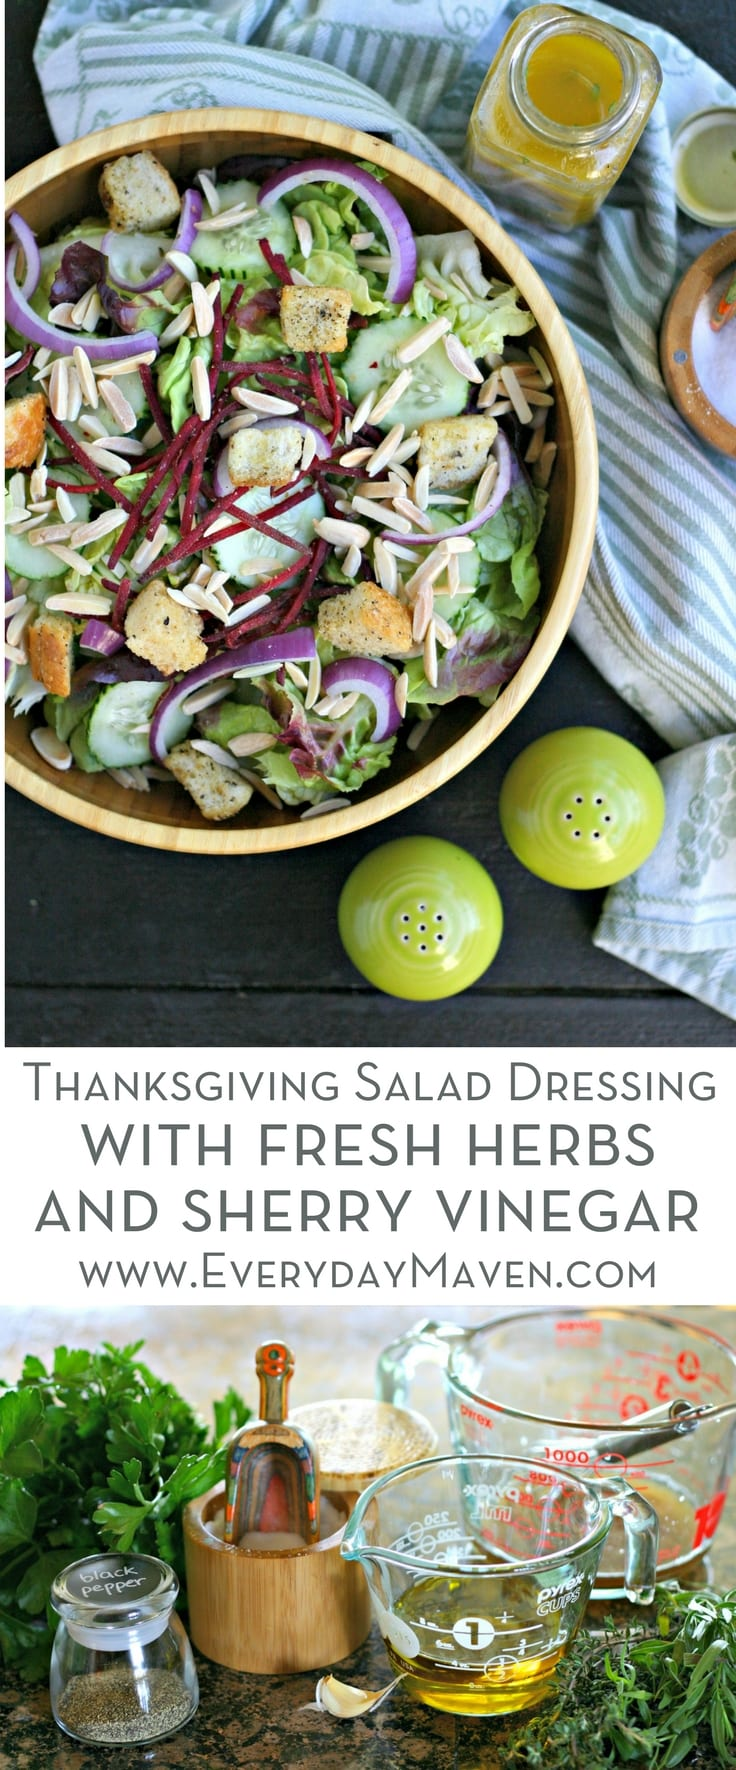 This Thanksgiving Salad Dressing with Fresh Herbs and Sherry Vinegar will wow all of your guests and add so much flavor to your holiday salad! Sponsored by @oliveoilsspain